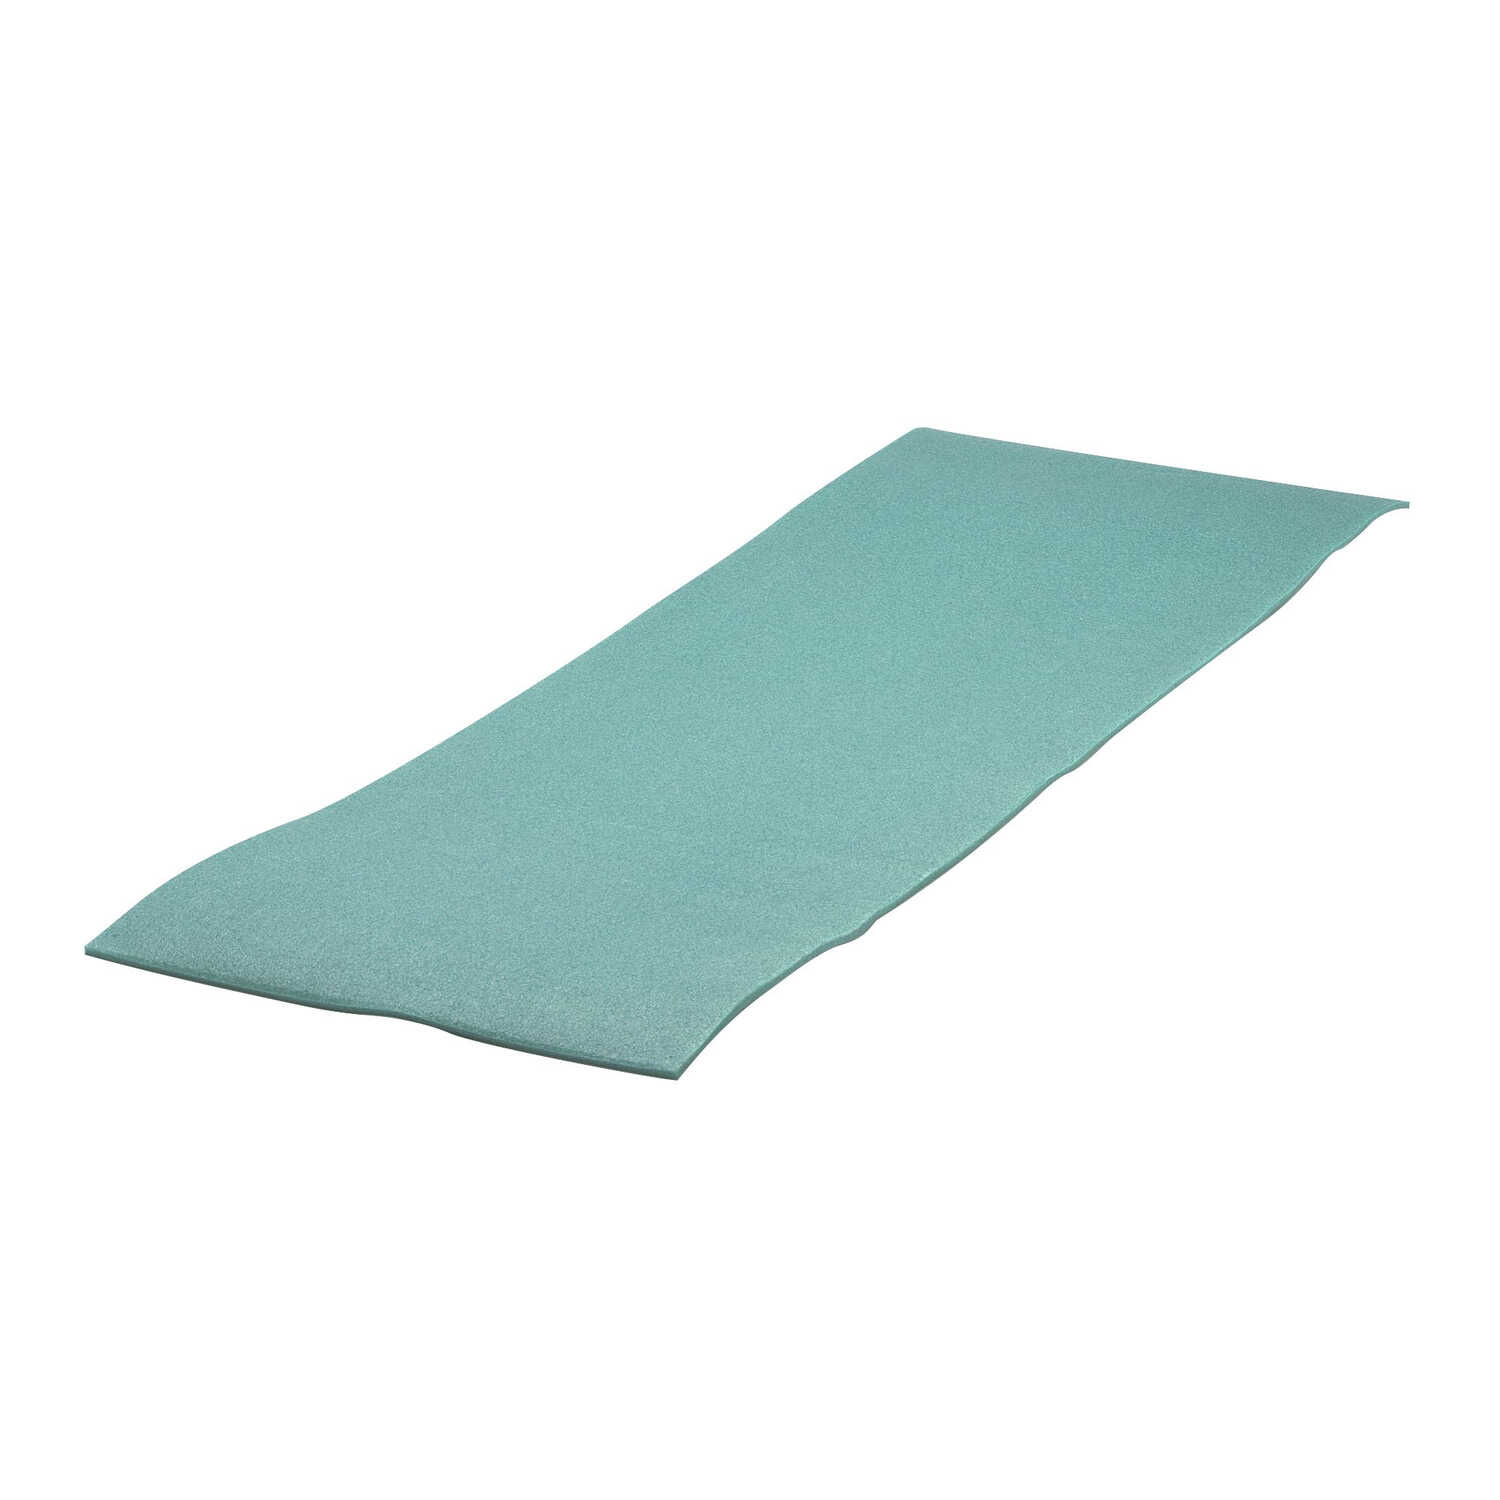 Coleman  Rest Easy  Green  Camp Pad  .375 in. H x 24 in. W x 72 in. L 1 pk